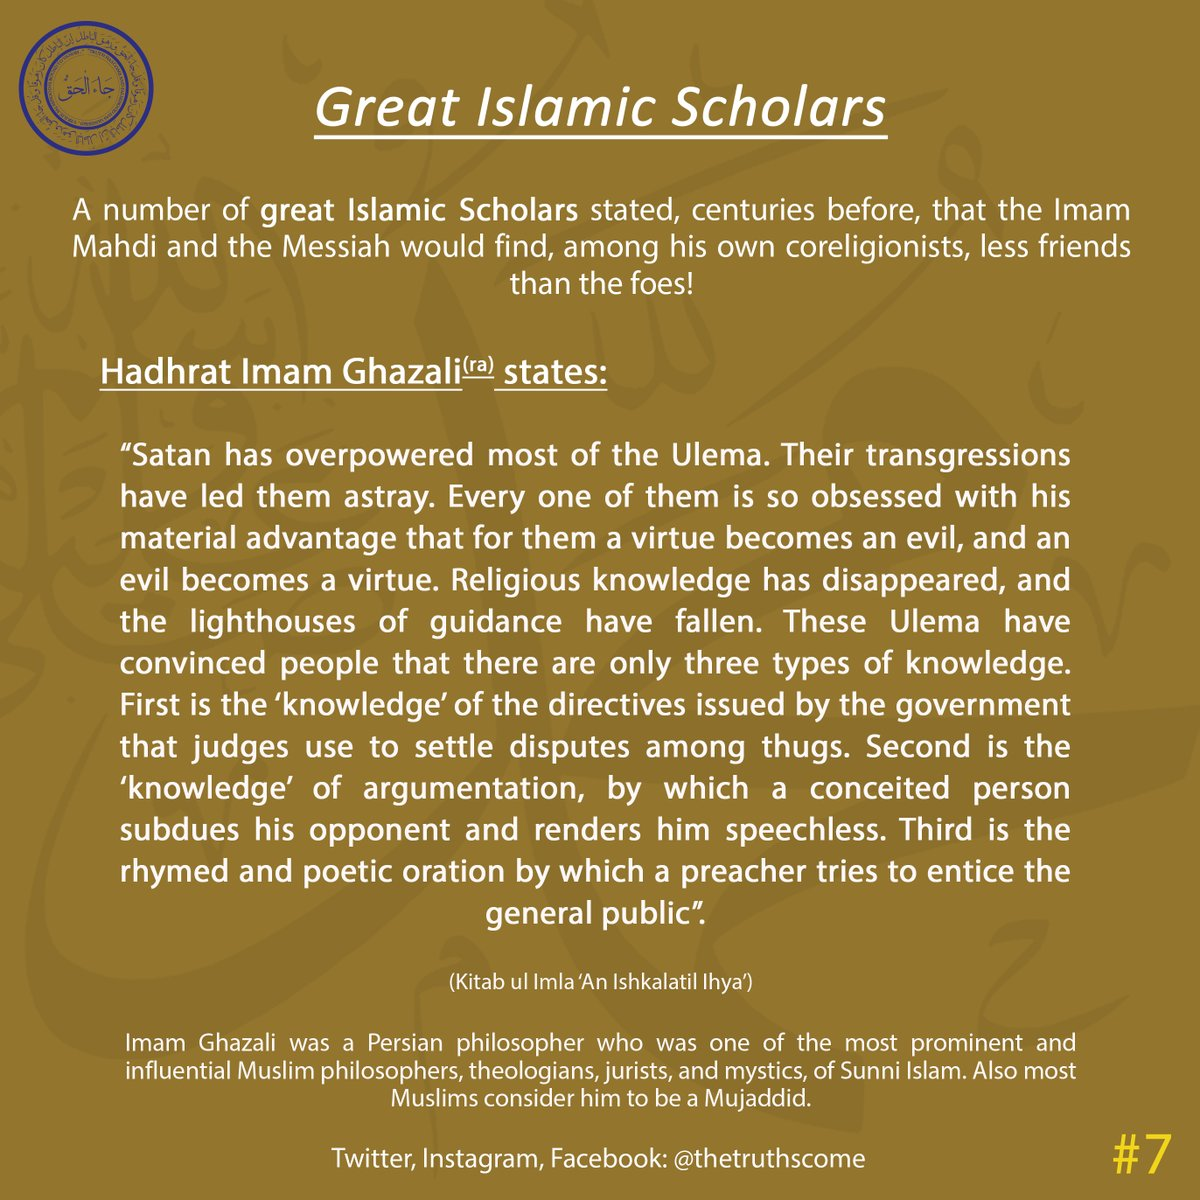 After the Holy Prophet(sa), many Great Islamic Scholars also described the condition of the so-called Ulema in the latter days, in the time of Imam Mahdi(as).  #Islam #GreatIslamicScholars #ImamMahdipic.twitter.com/GfDh0ypliK